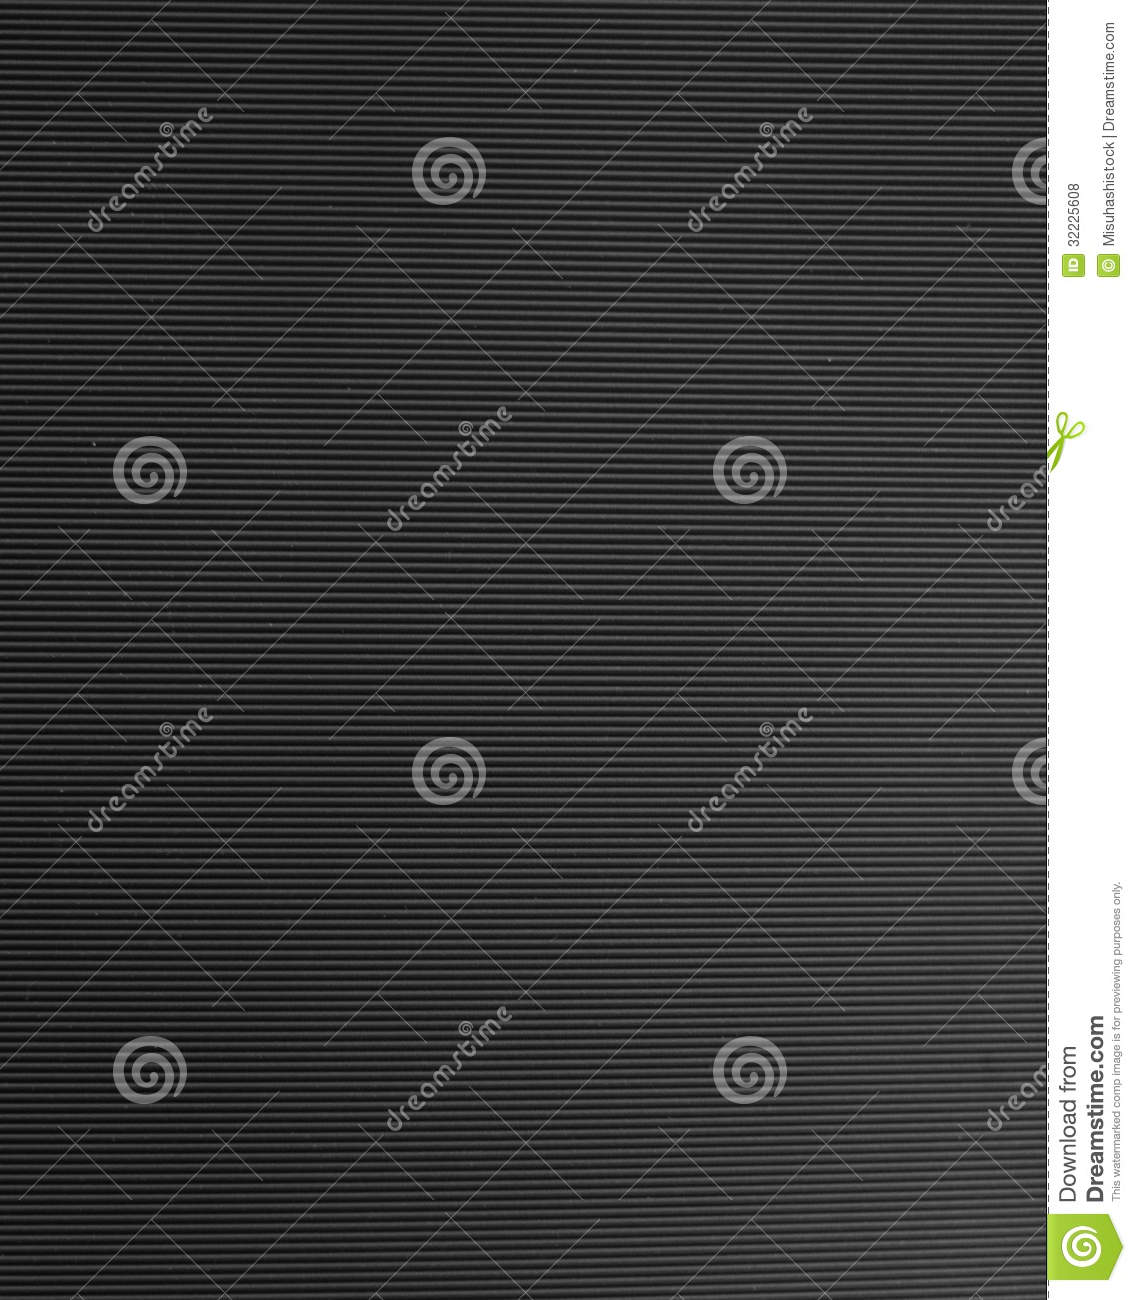 Download Fundo preto da textura foto de stock. Imagem de closeup - 32225608